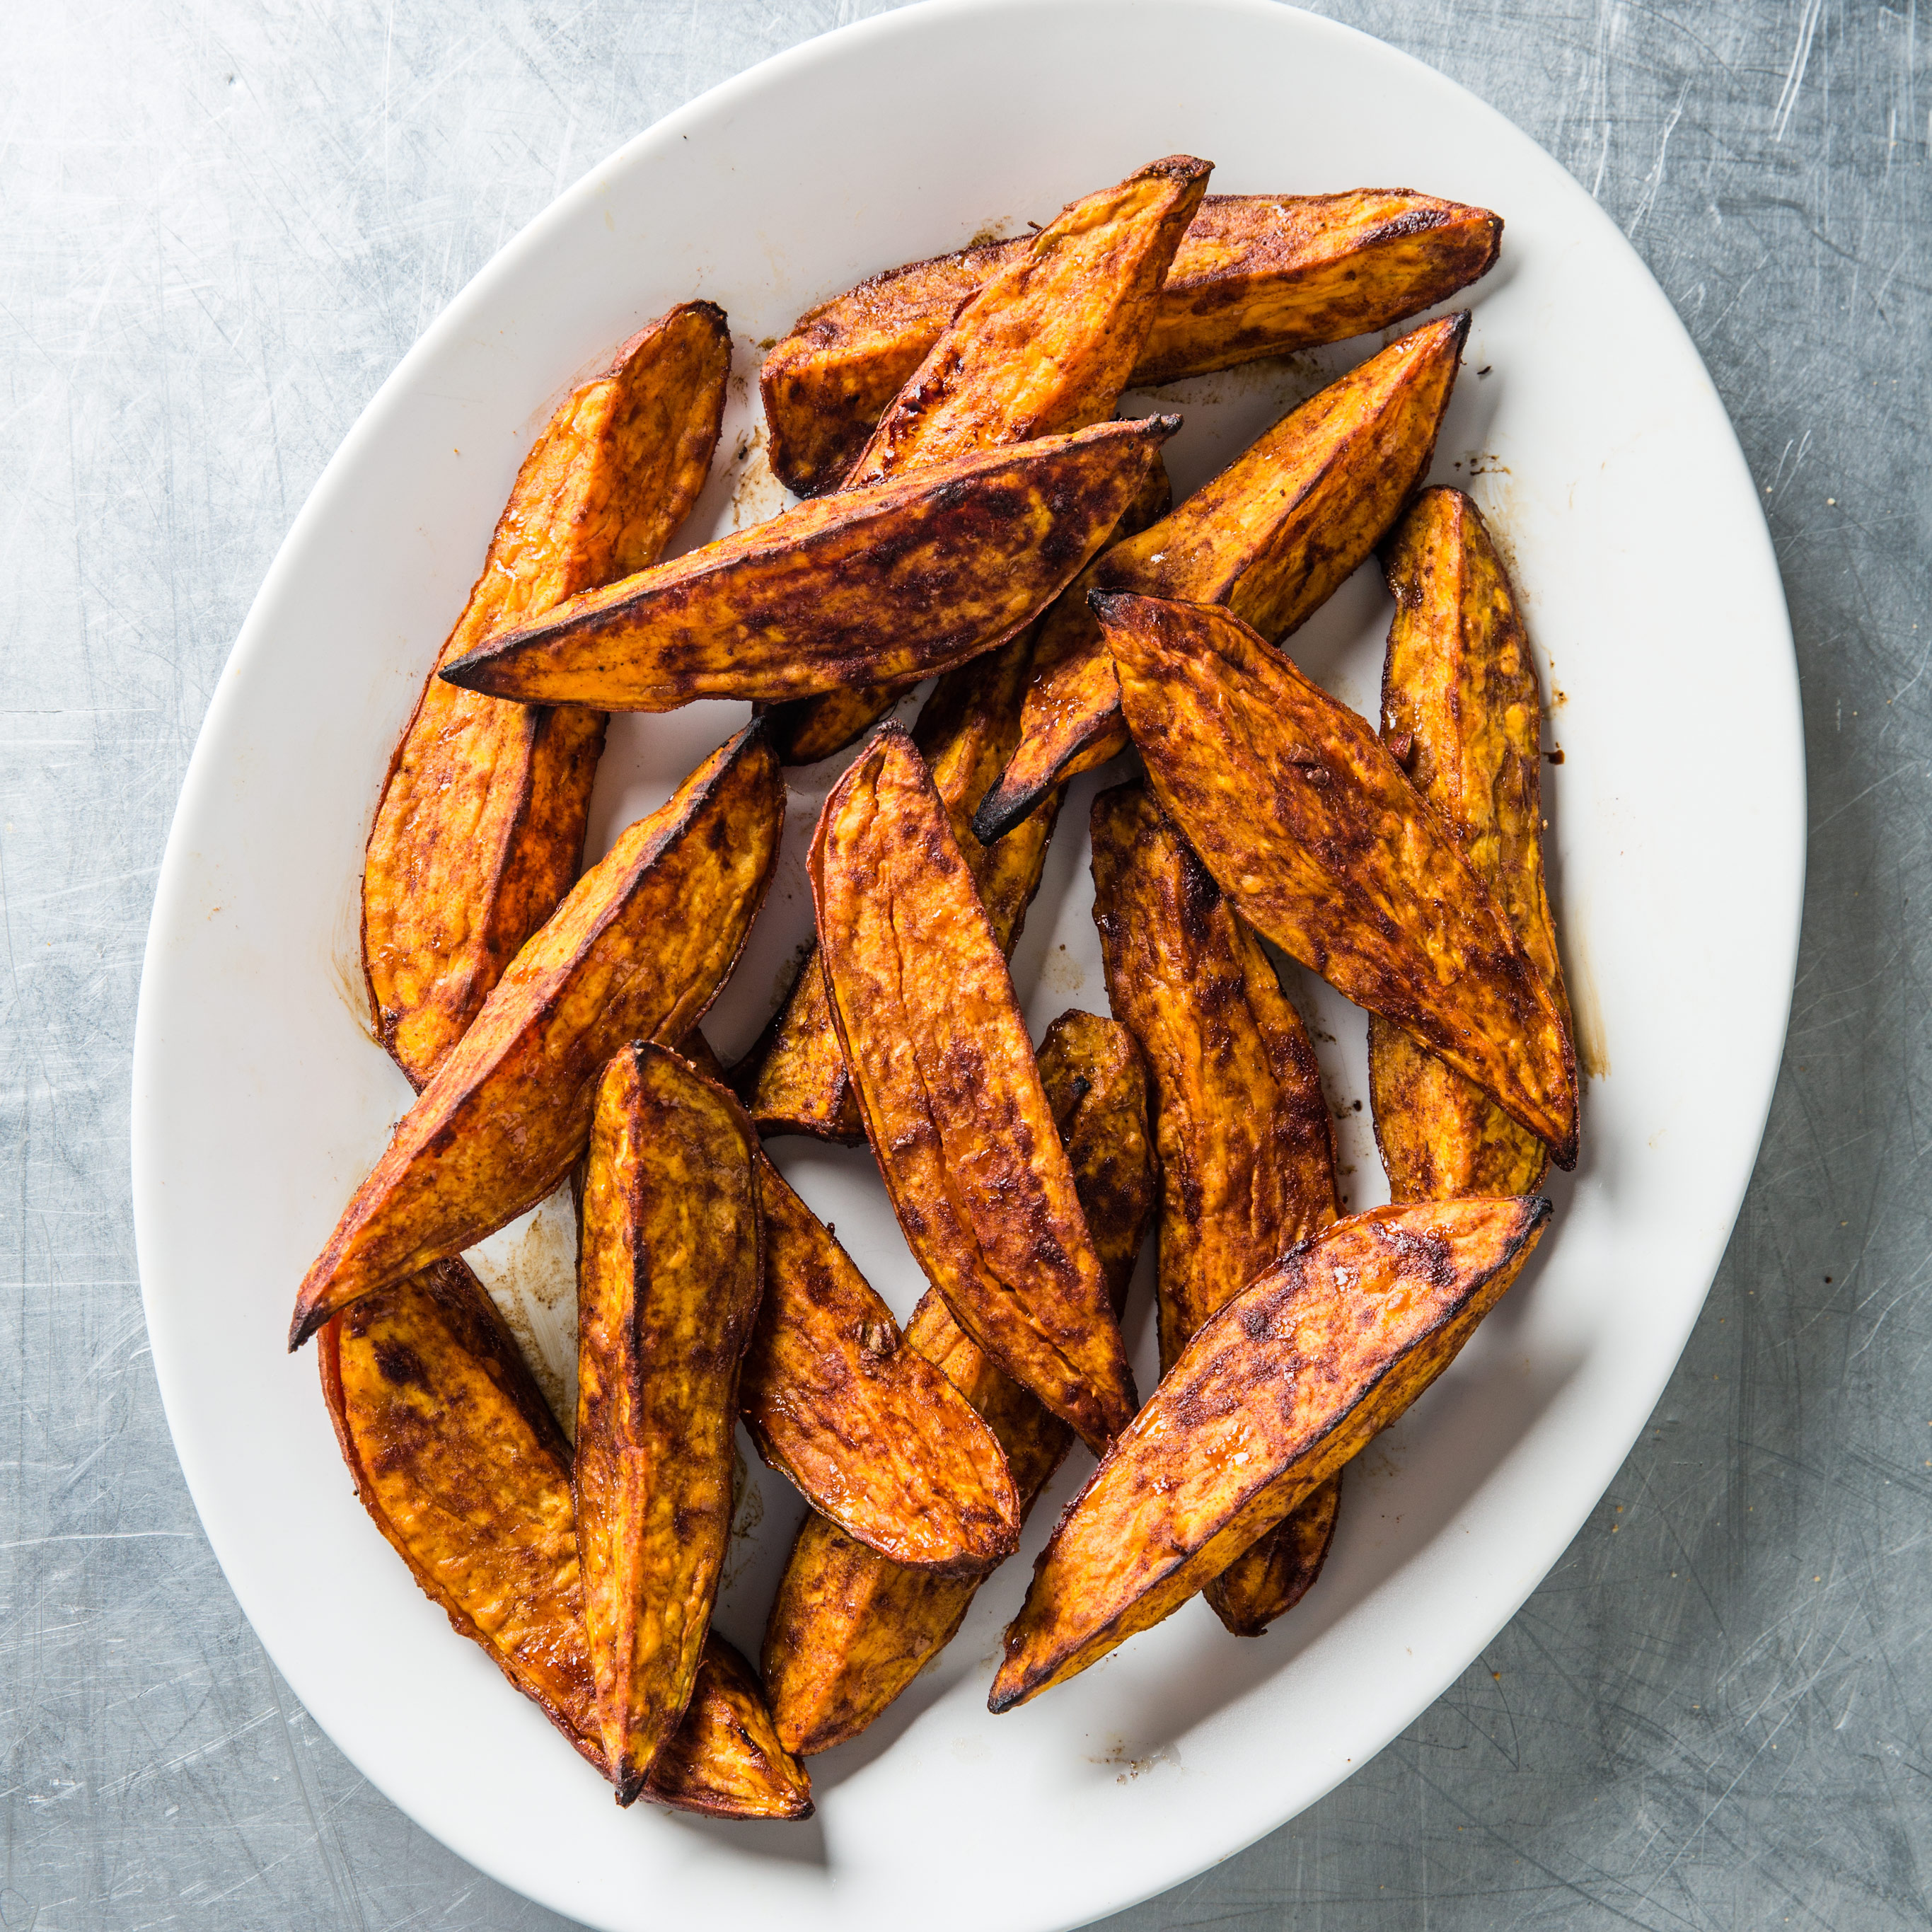 Cinnamon Sugar Roasted Sweet Potato Wedges Cook S Country